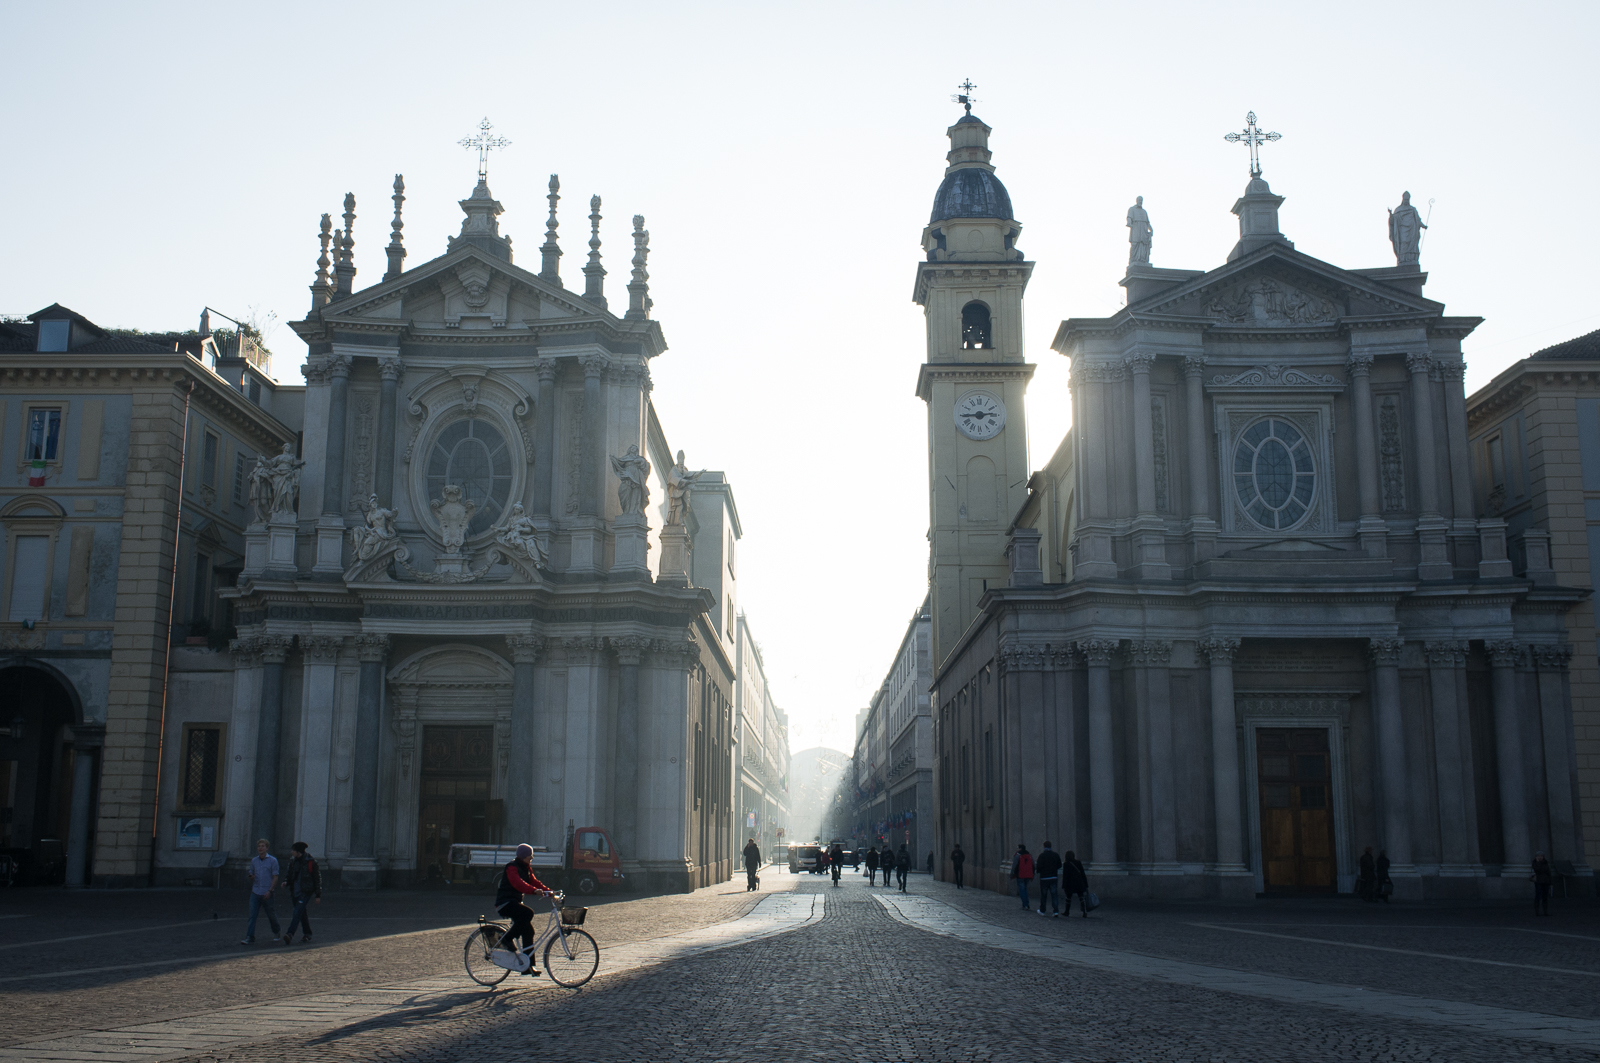 The twin churches San Carlo and Santa Cristina, Piazza San Carlo, Turin